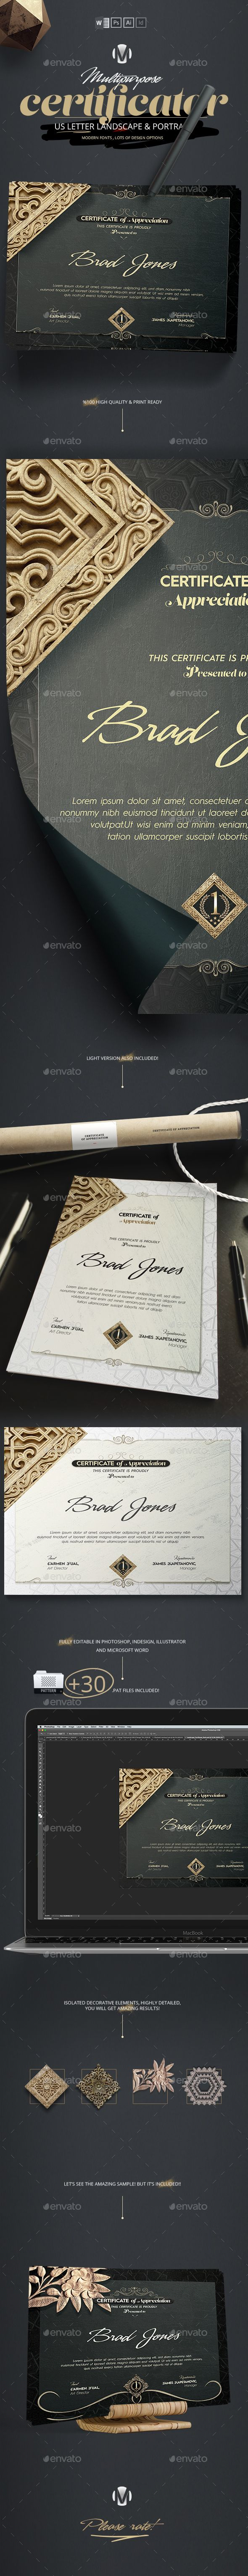 Certificator pinterest certificate certificate design and template quickly create a professional looking certificate of appreciation certificate for any company using this yelopaper Choice Image